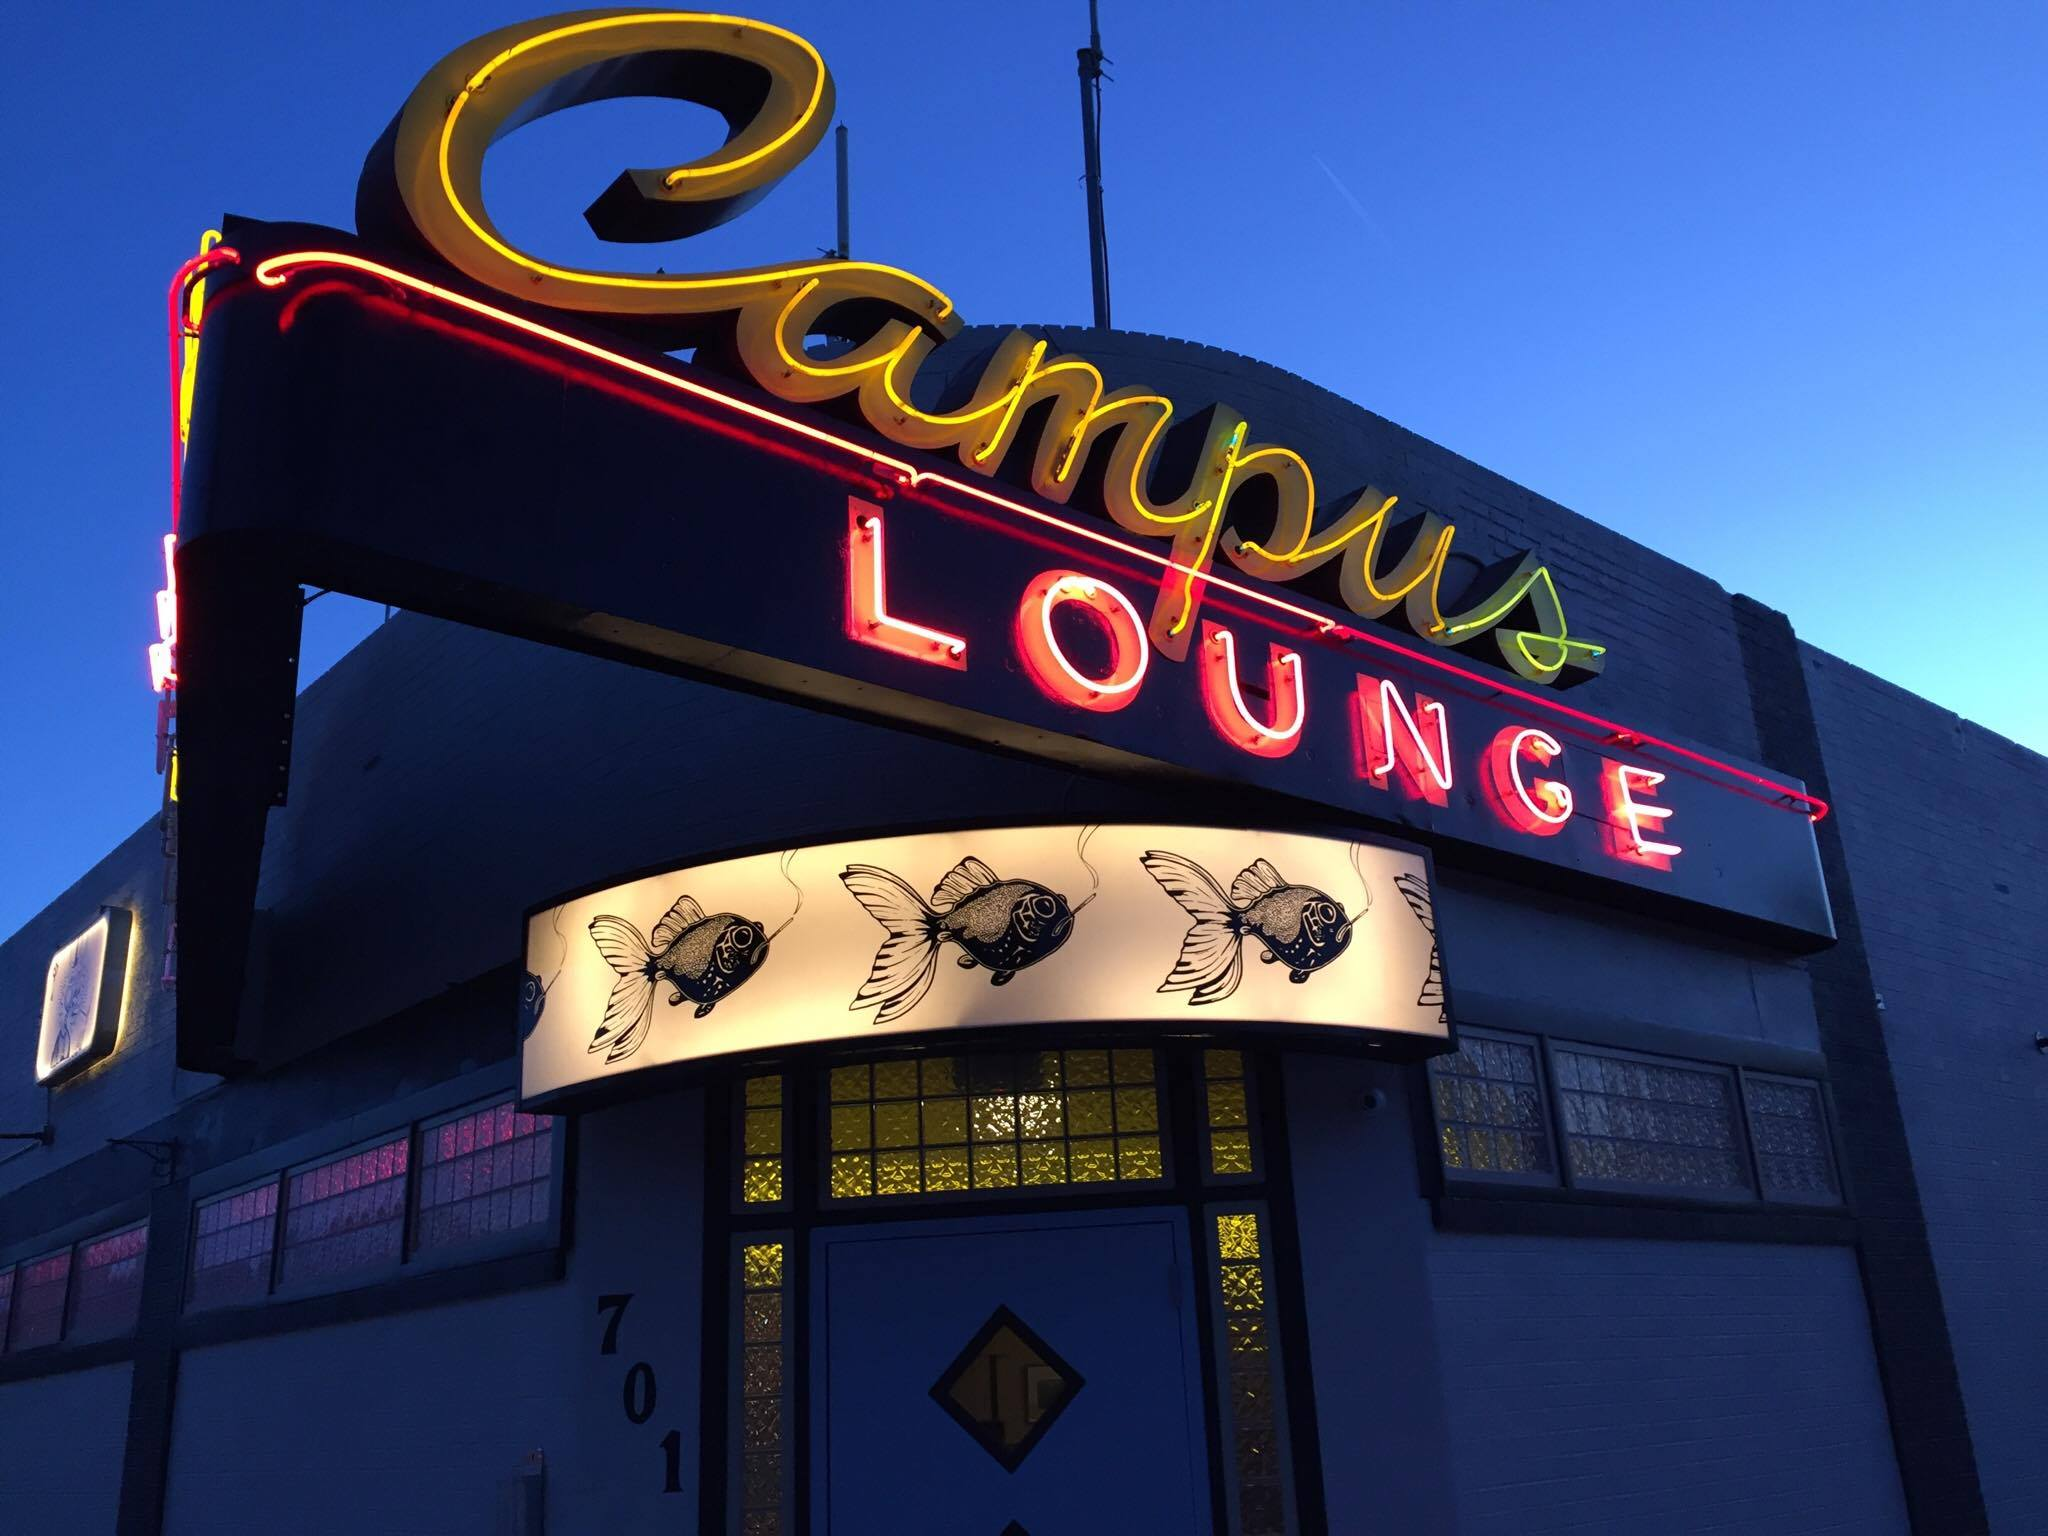 The Campus Lounge